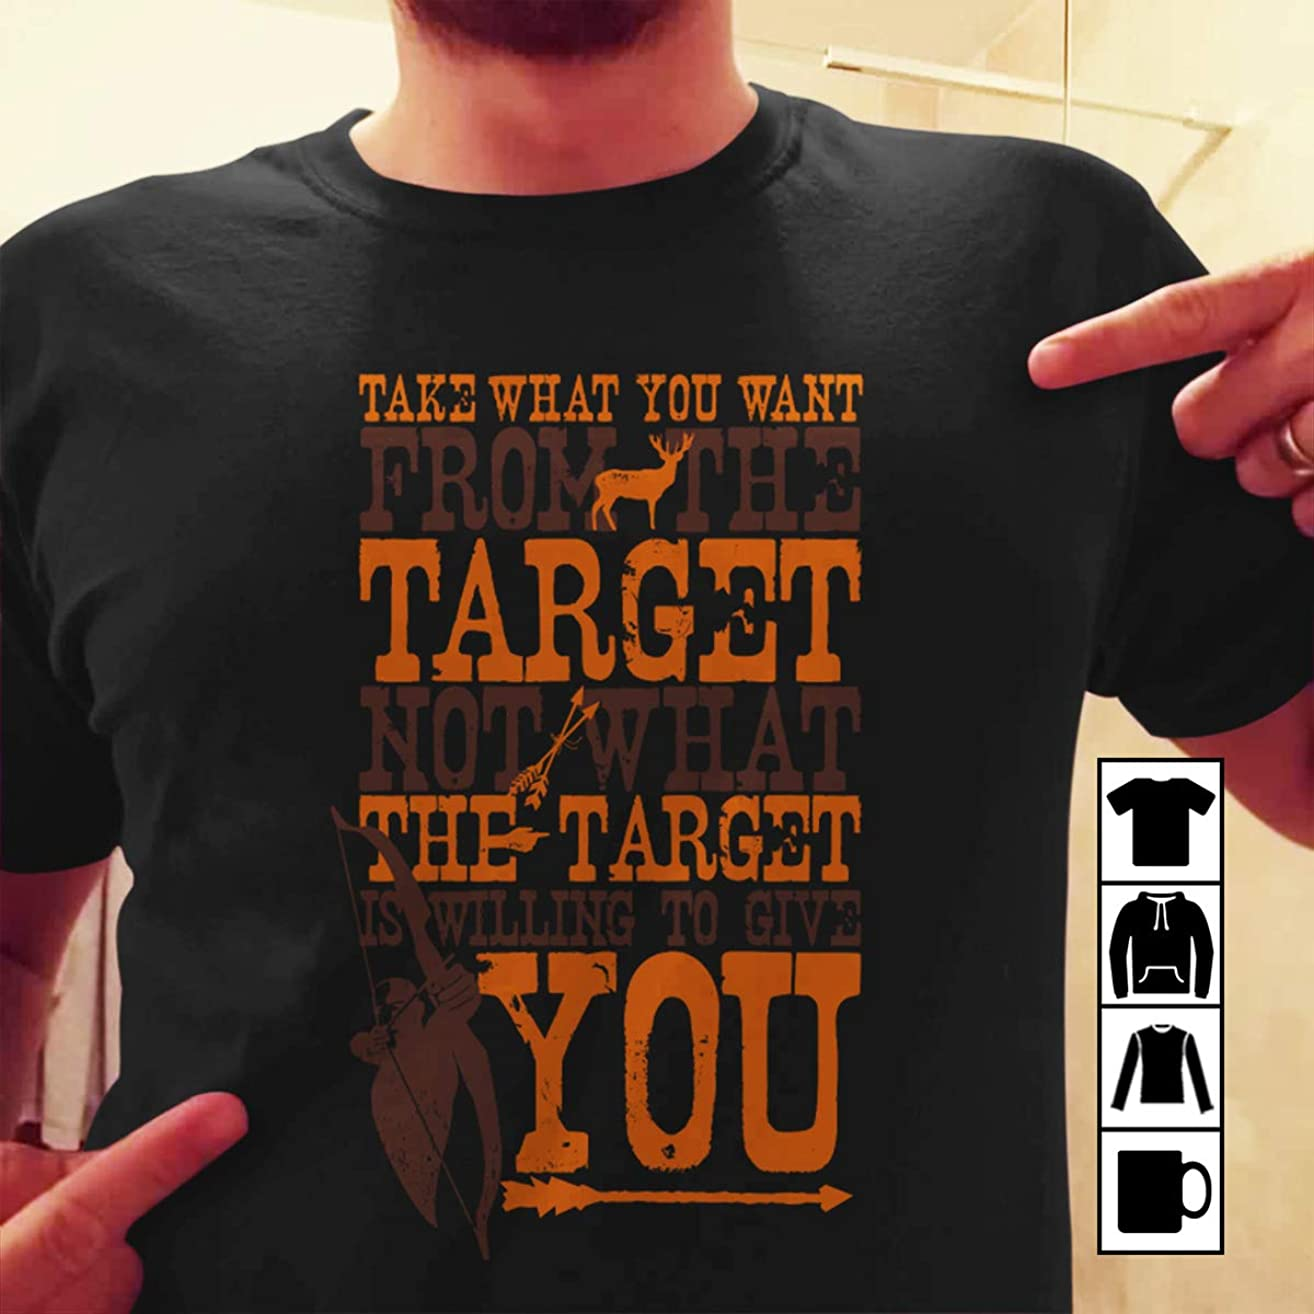 Bowman Archer Archery Take what you want fom the target not what the target is willing to give you T Shirt Long Sleeve Sweatshirt Hoodie Youth